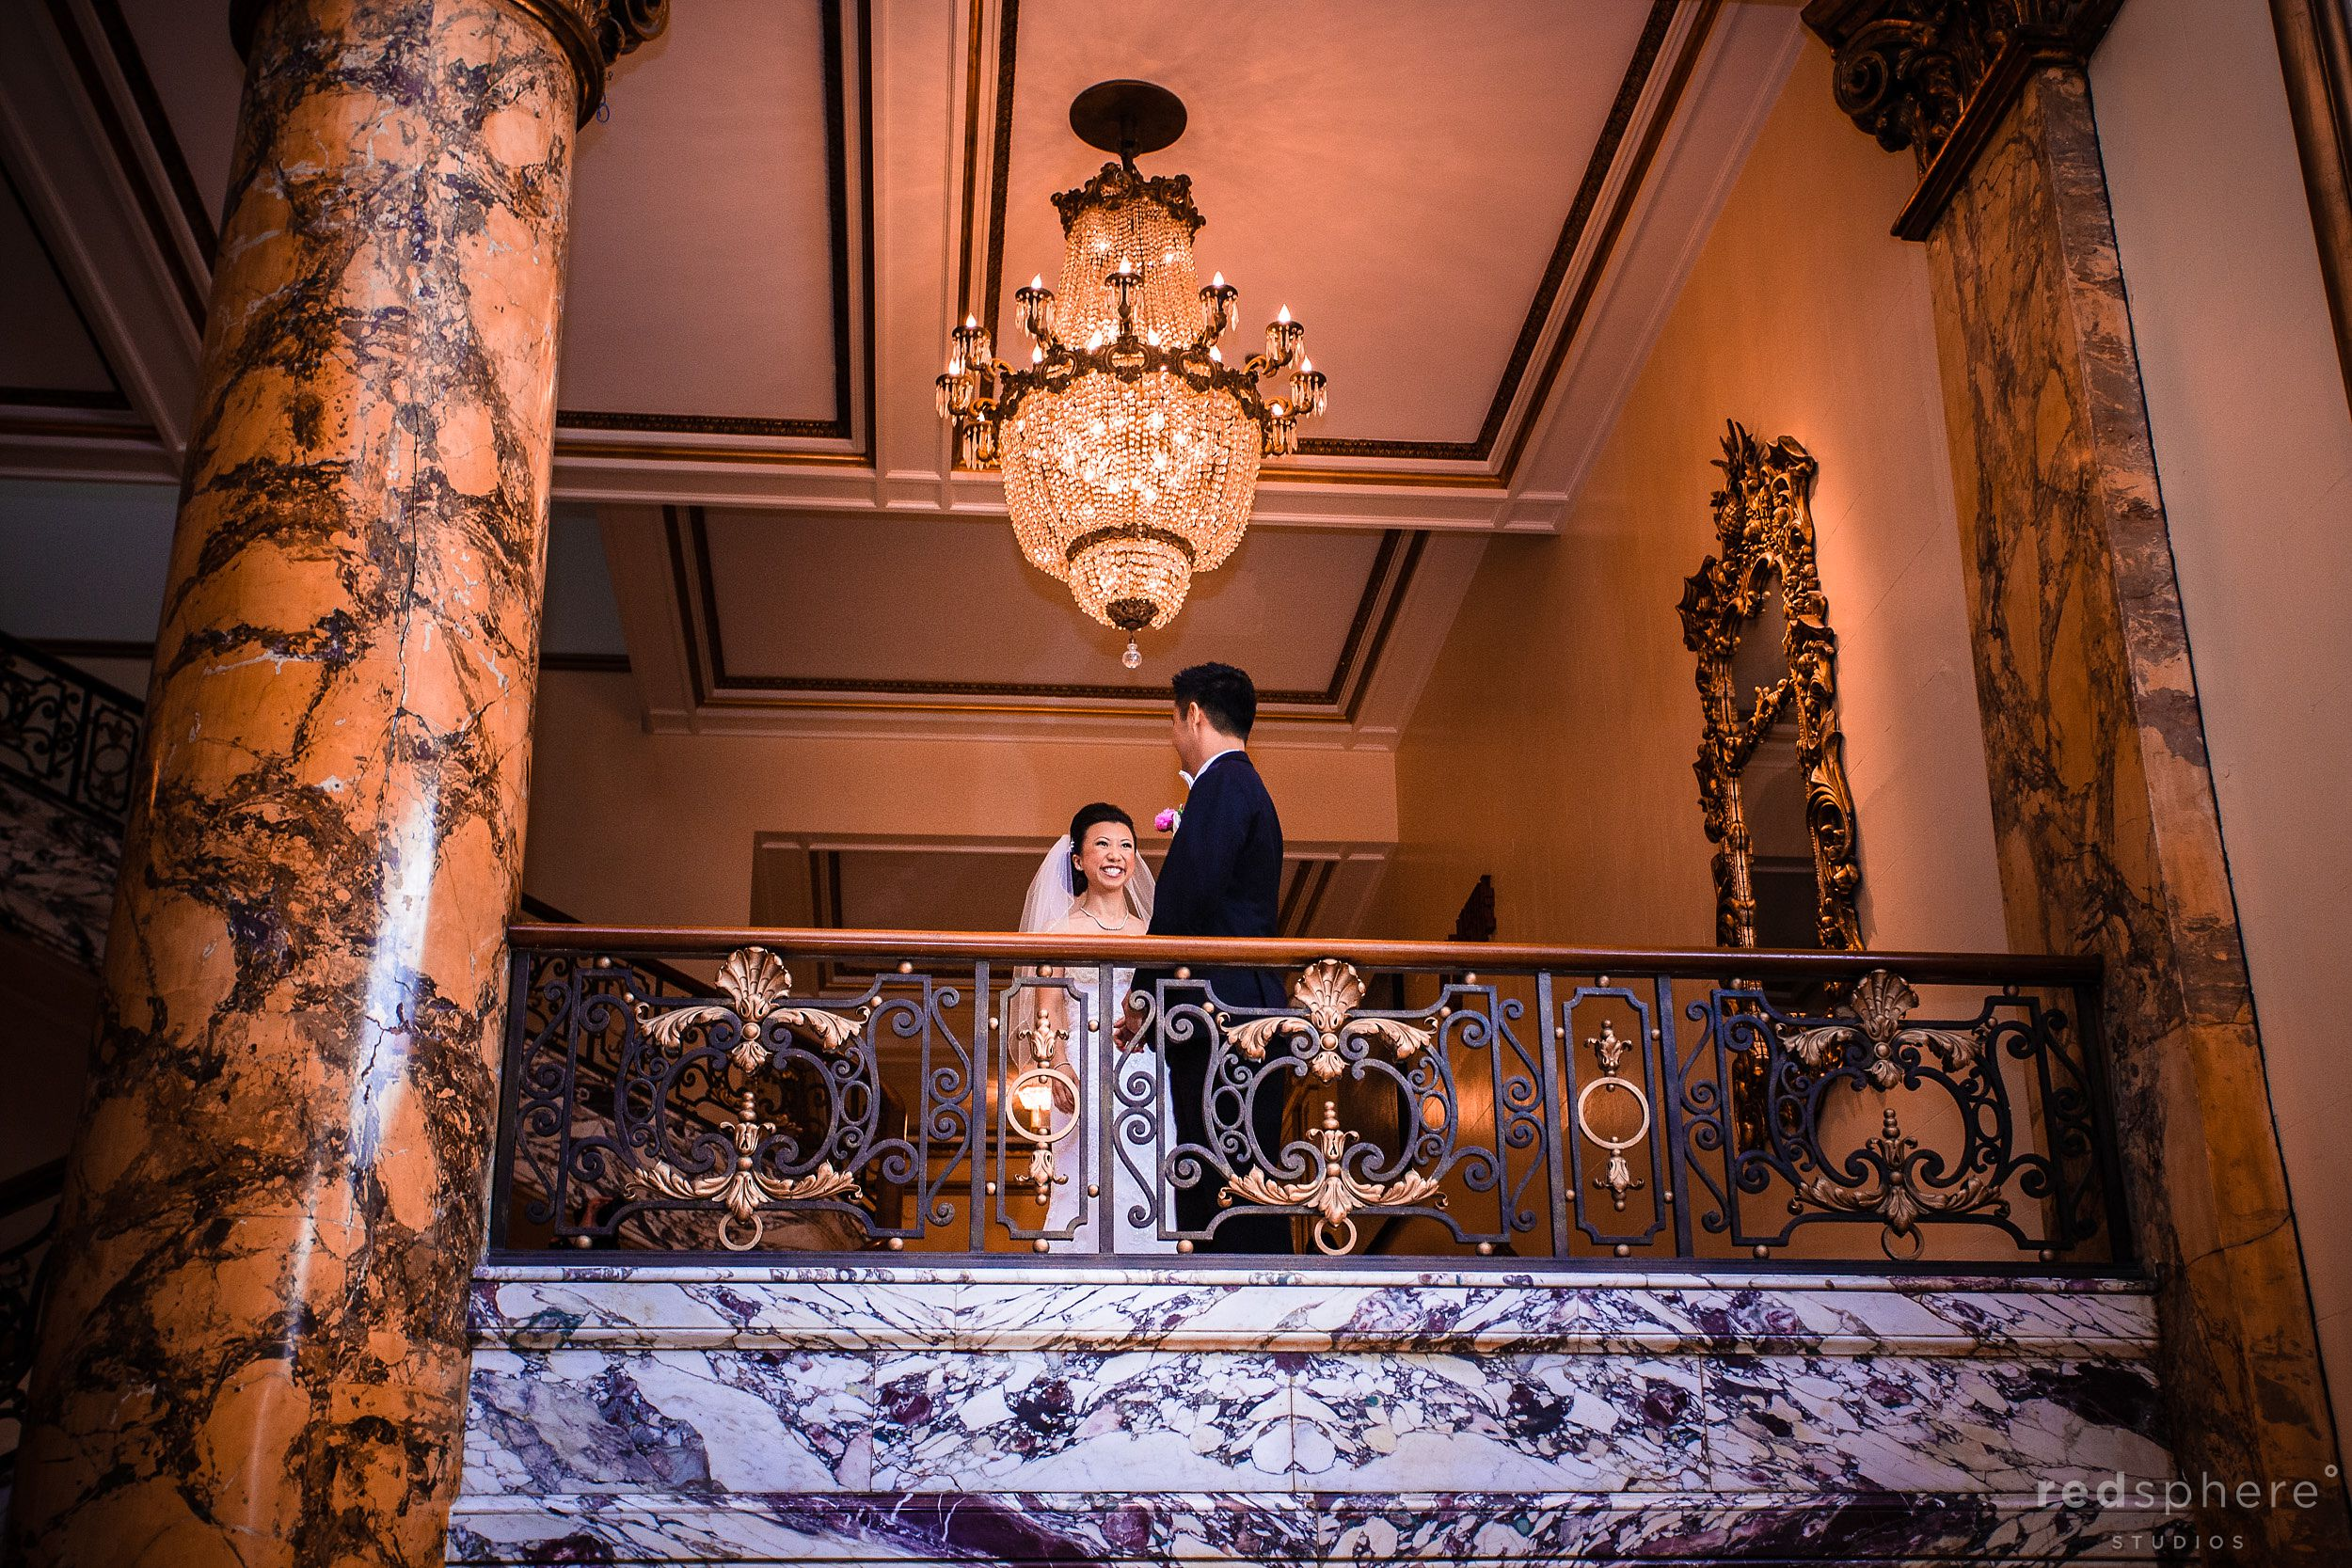 Bride Shares a Laugh While With Groom at San Francisco's Fairmont Hotel